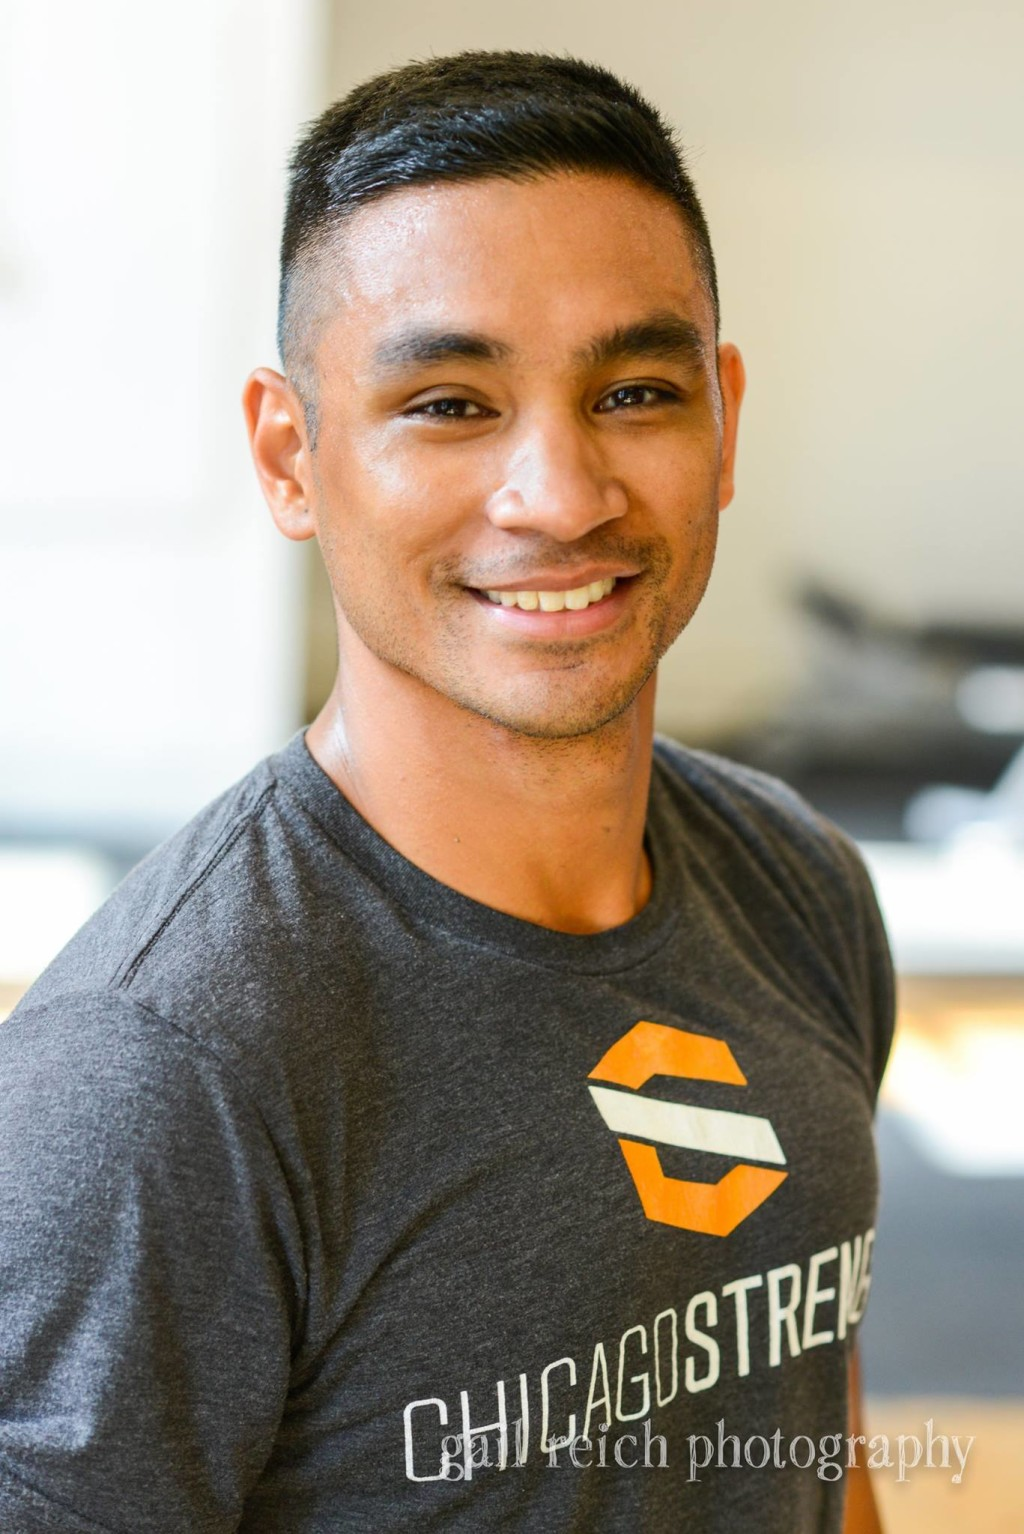 Personal Trainer Chicago, Illinois - James Plata